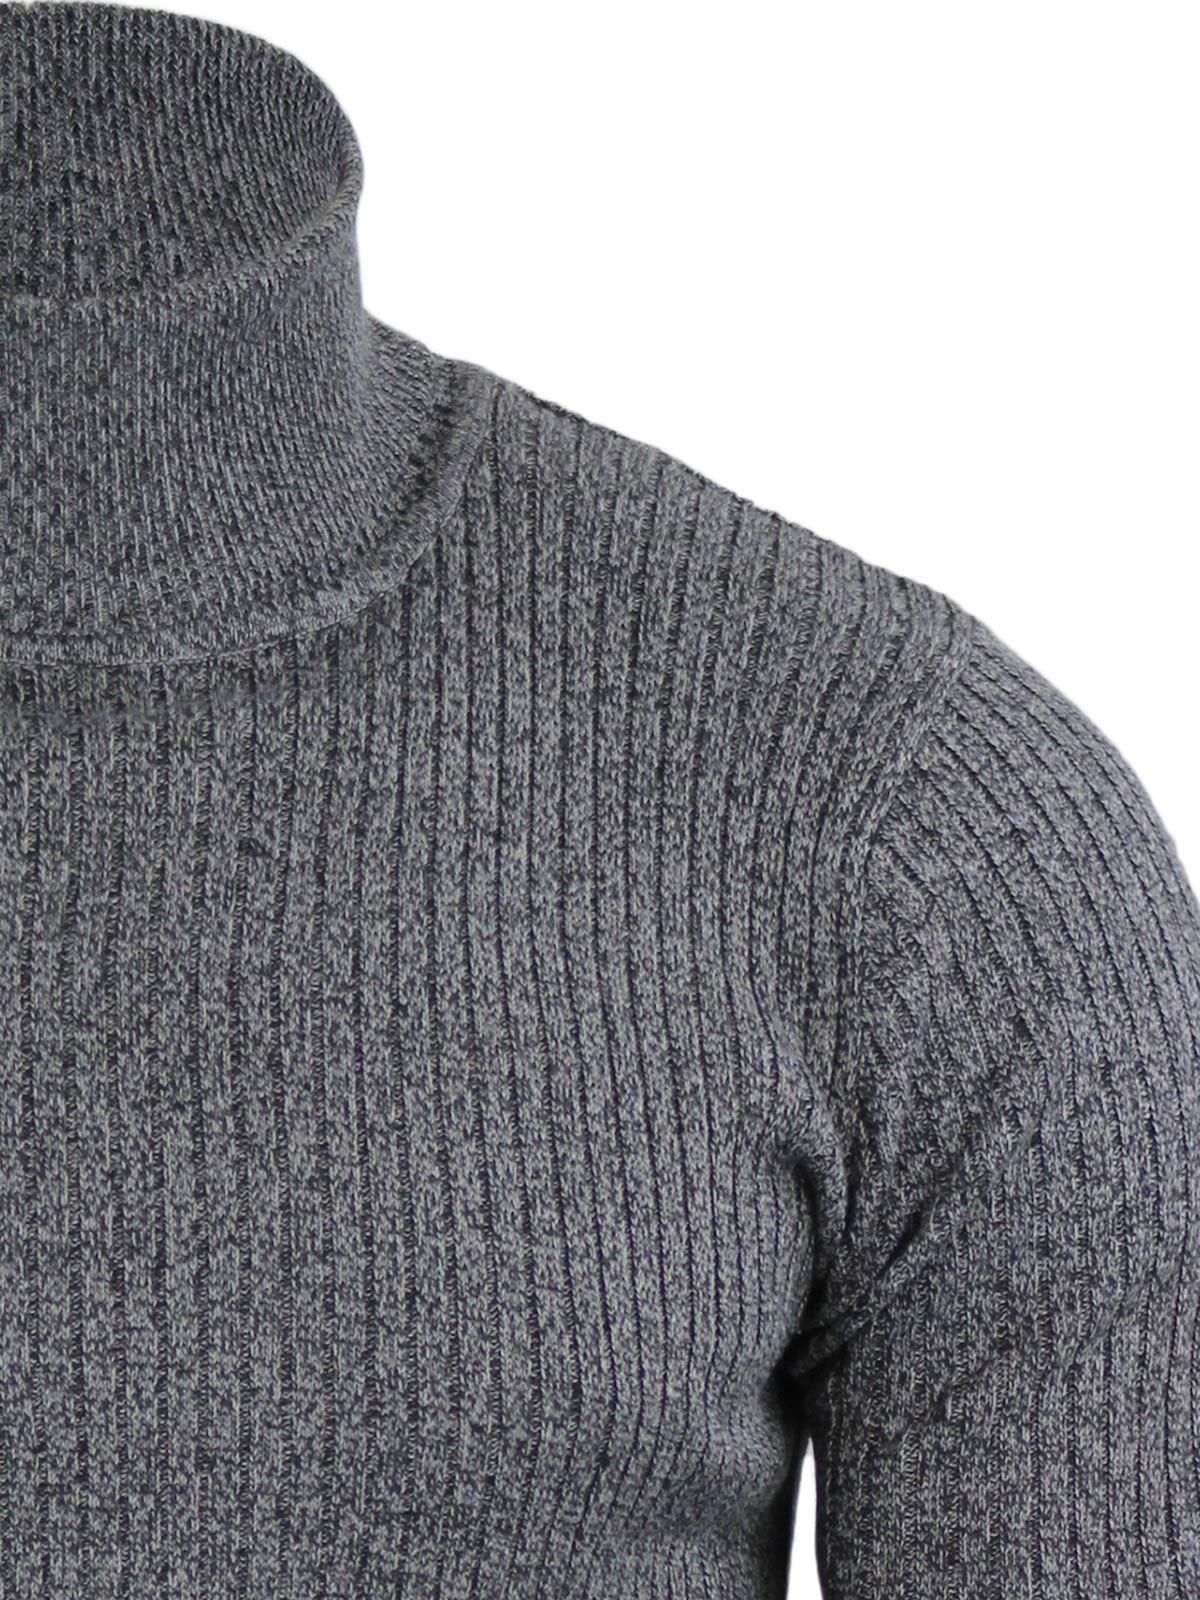 Mens-Jumper-Brave-Soul-Knitted-Sweater-In-Various-Styles thumbnail 115